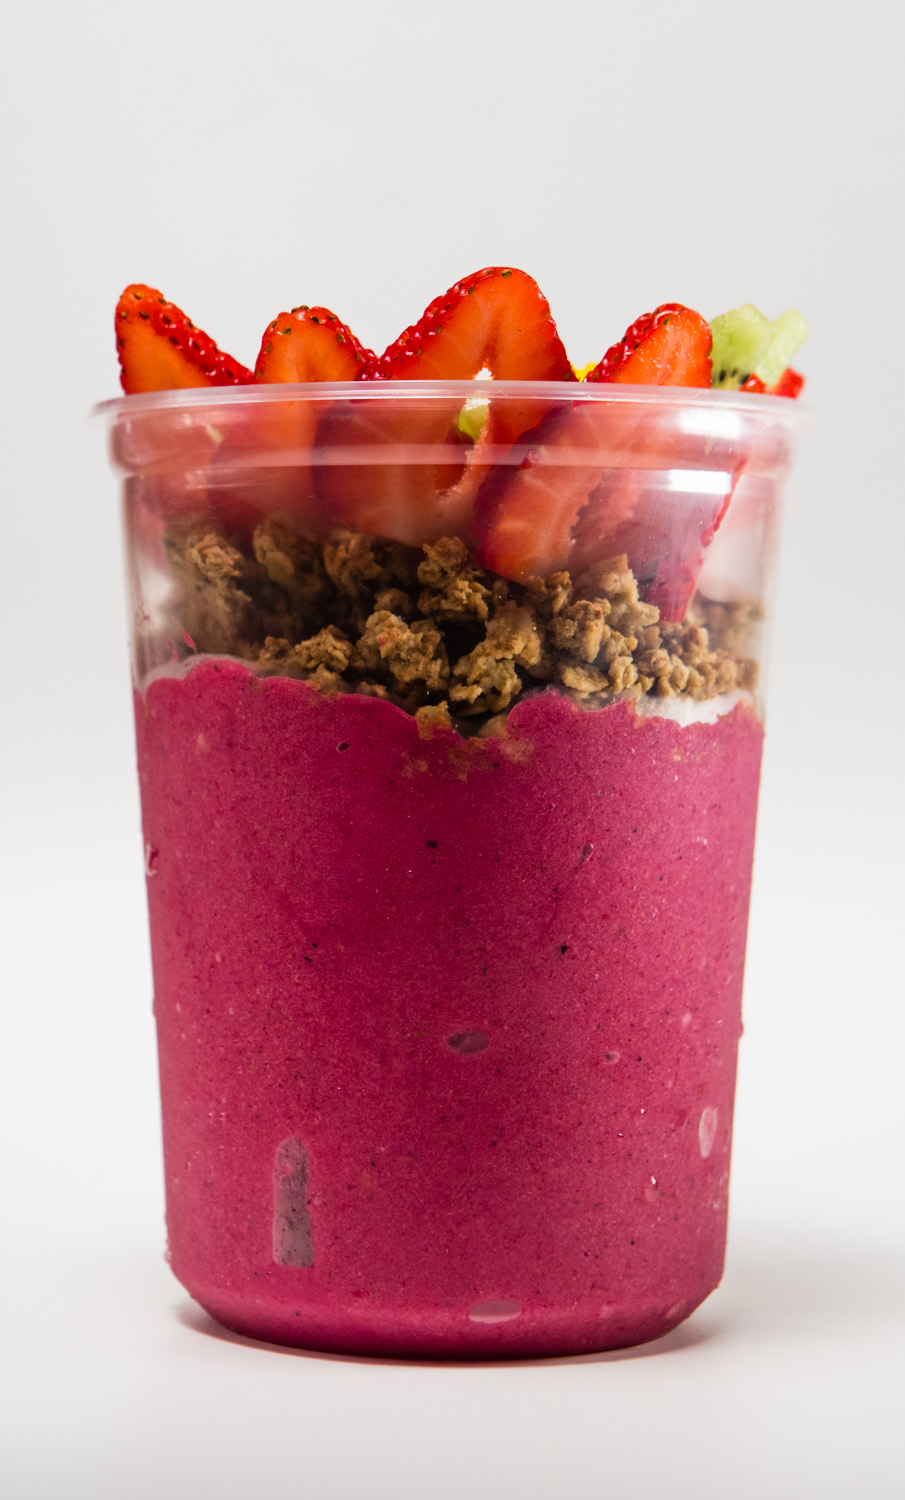 We pride ourselves in everything that we do from our fresh baked gluten-free granola to our fresh cut fruit.